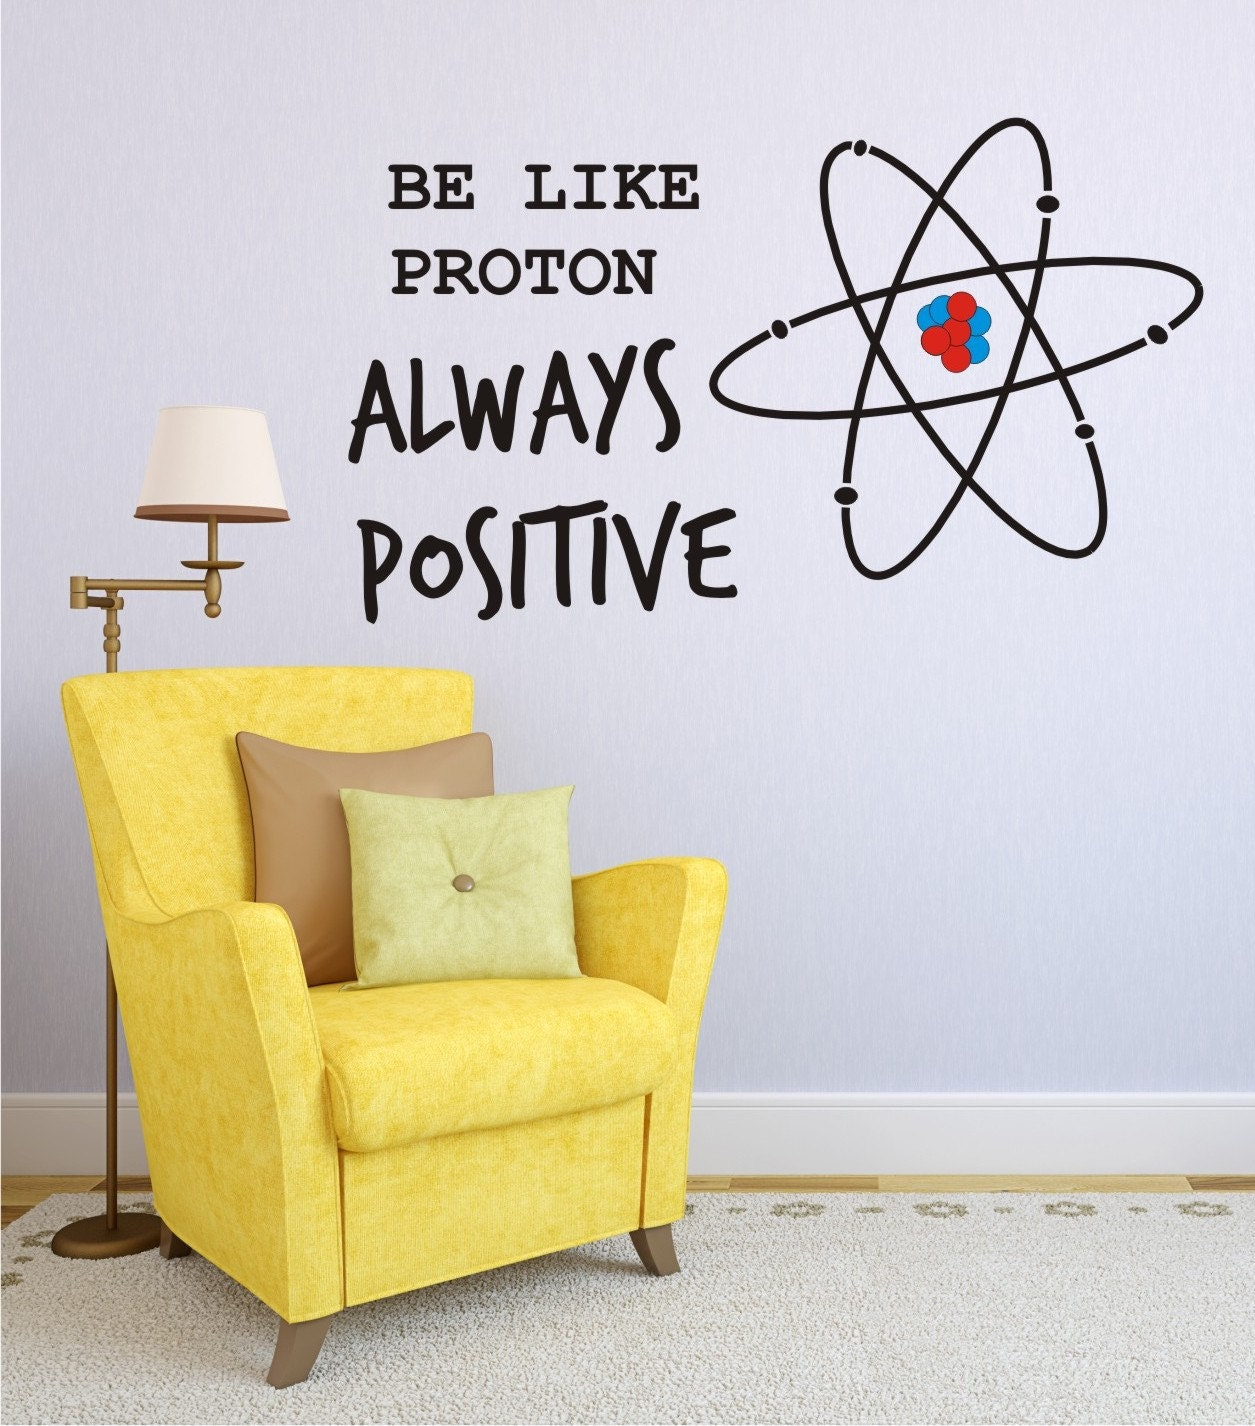 Vinyl Wall Decal Be Like Proton Always Positive Wall Decals